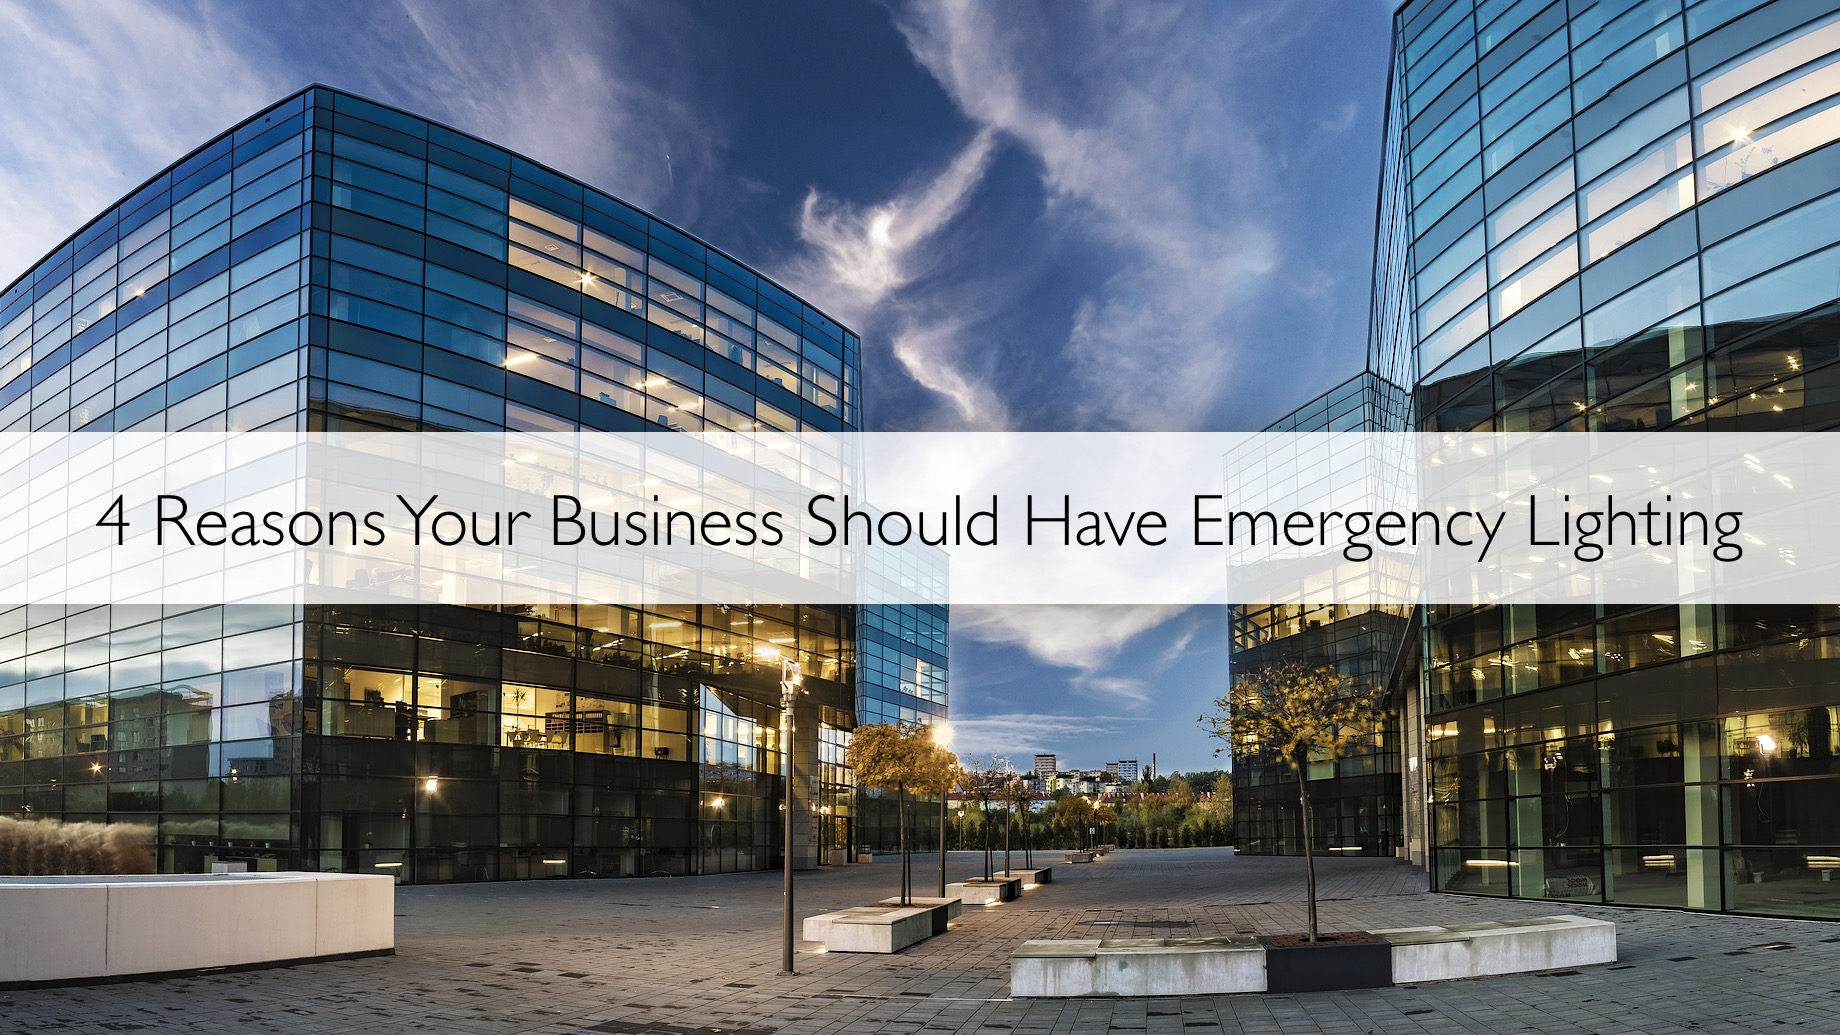 4 Reasons Your Business Should Have Emergency Lighting